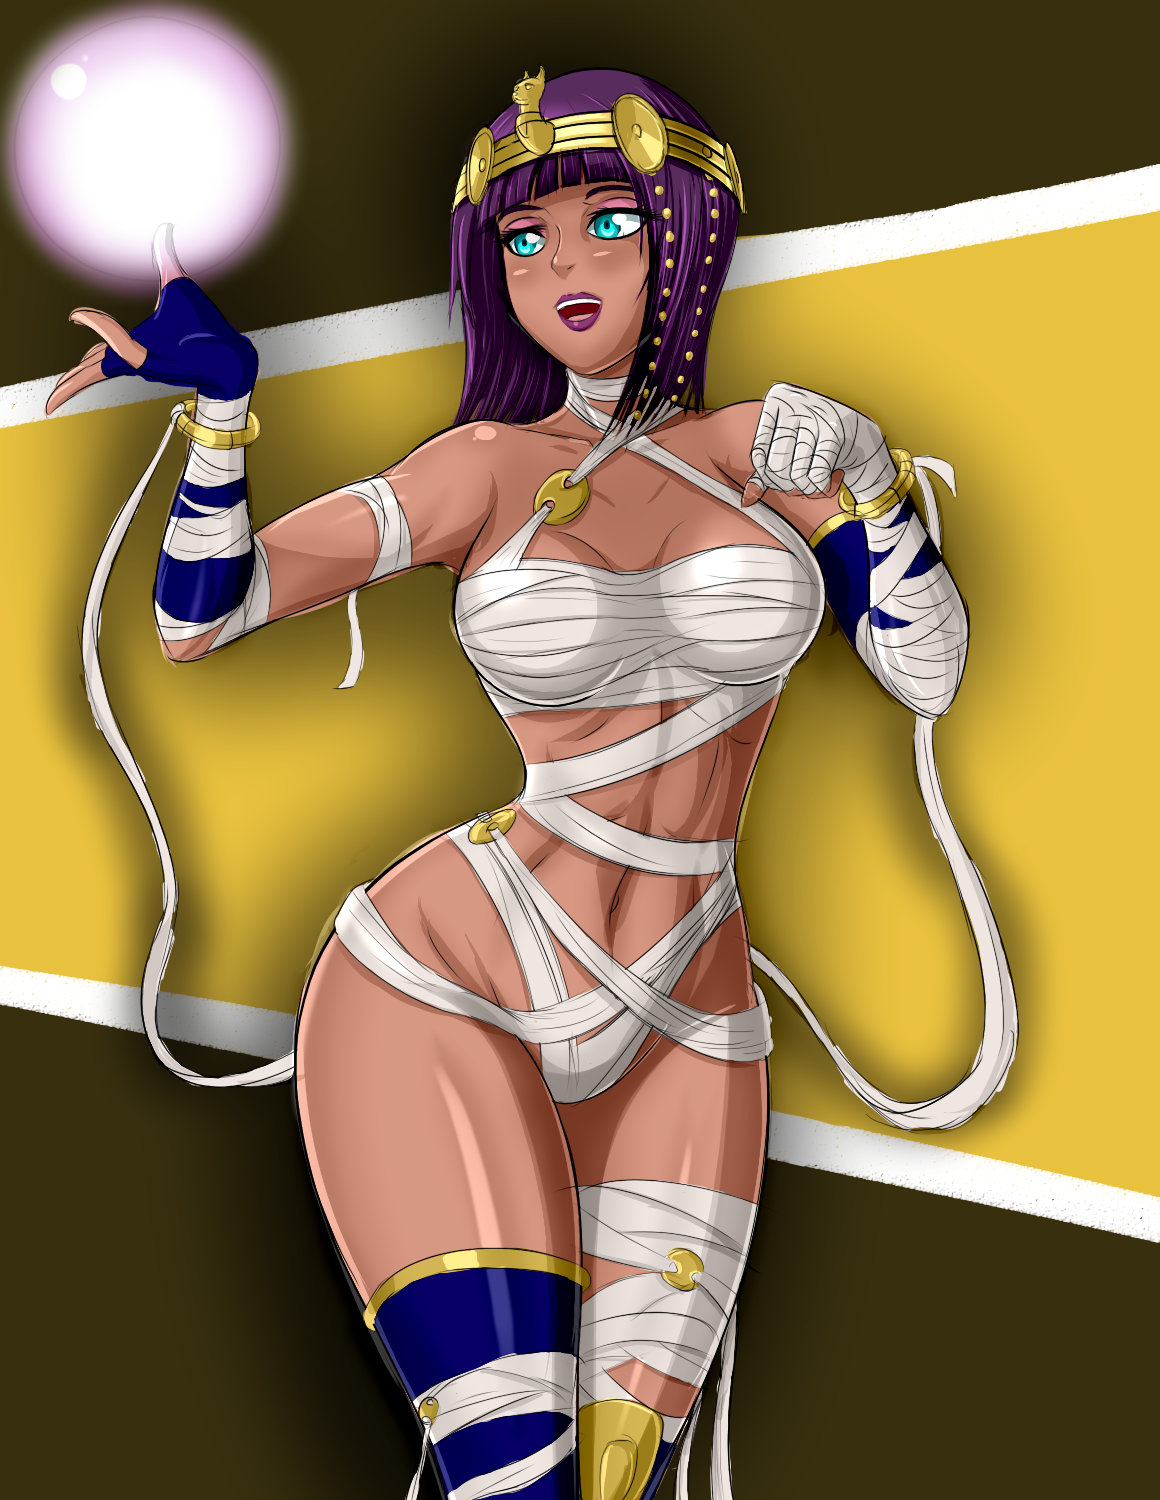 menat_battle_costume_by_zantyarz-dbo934q.png